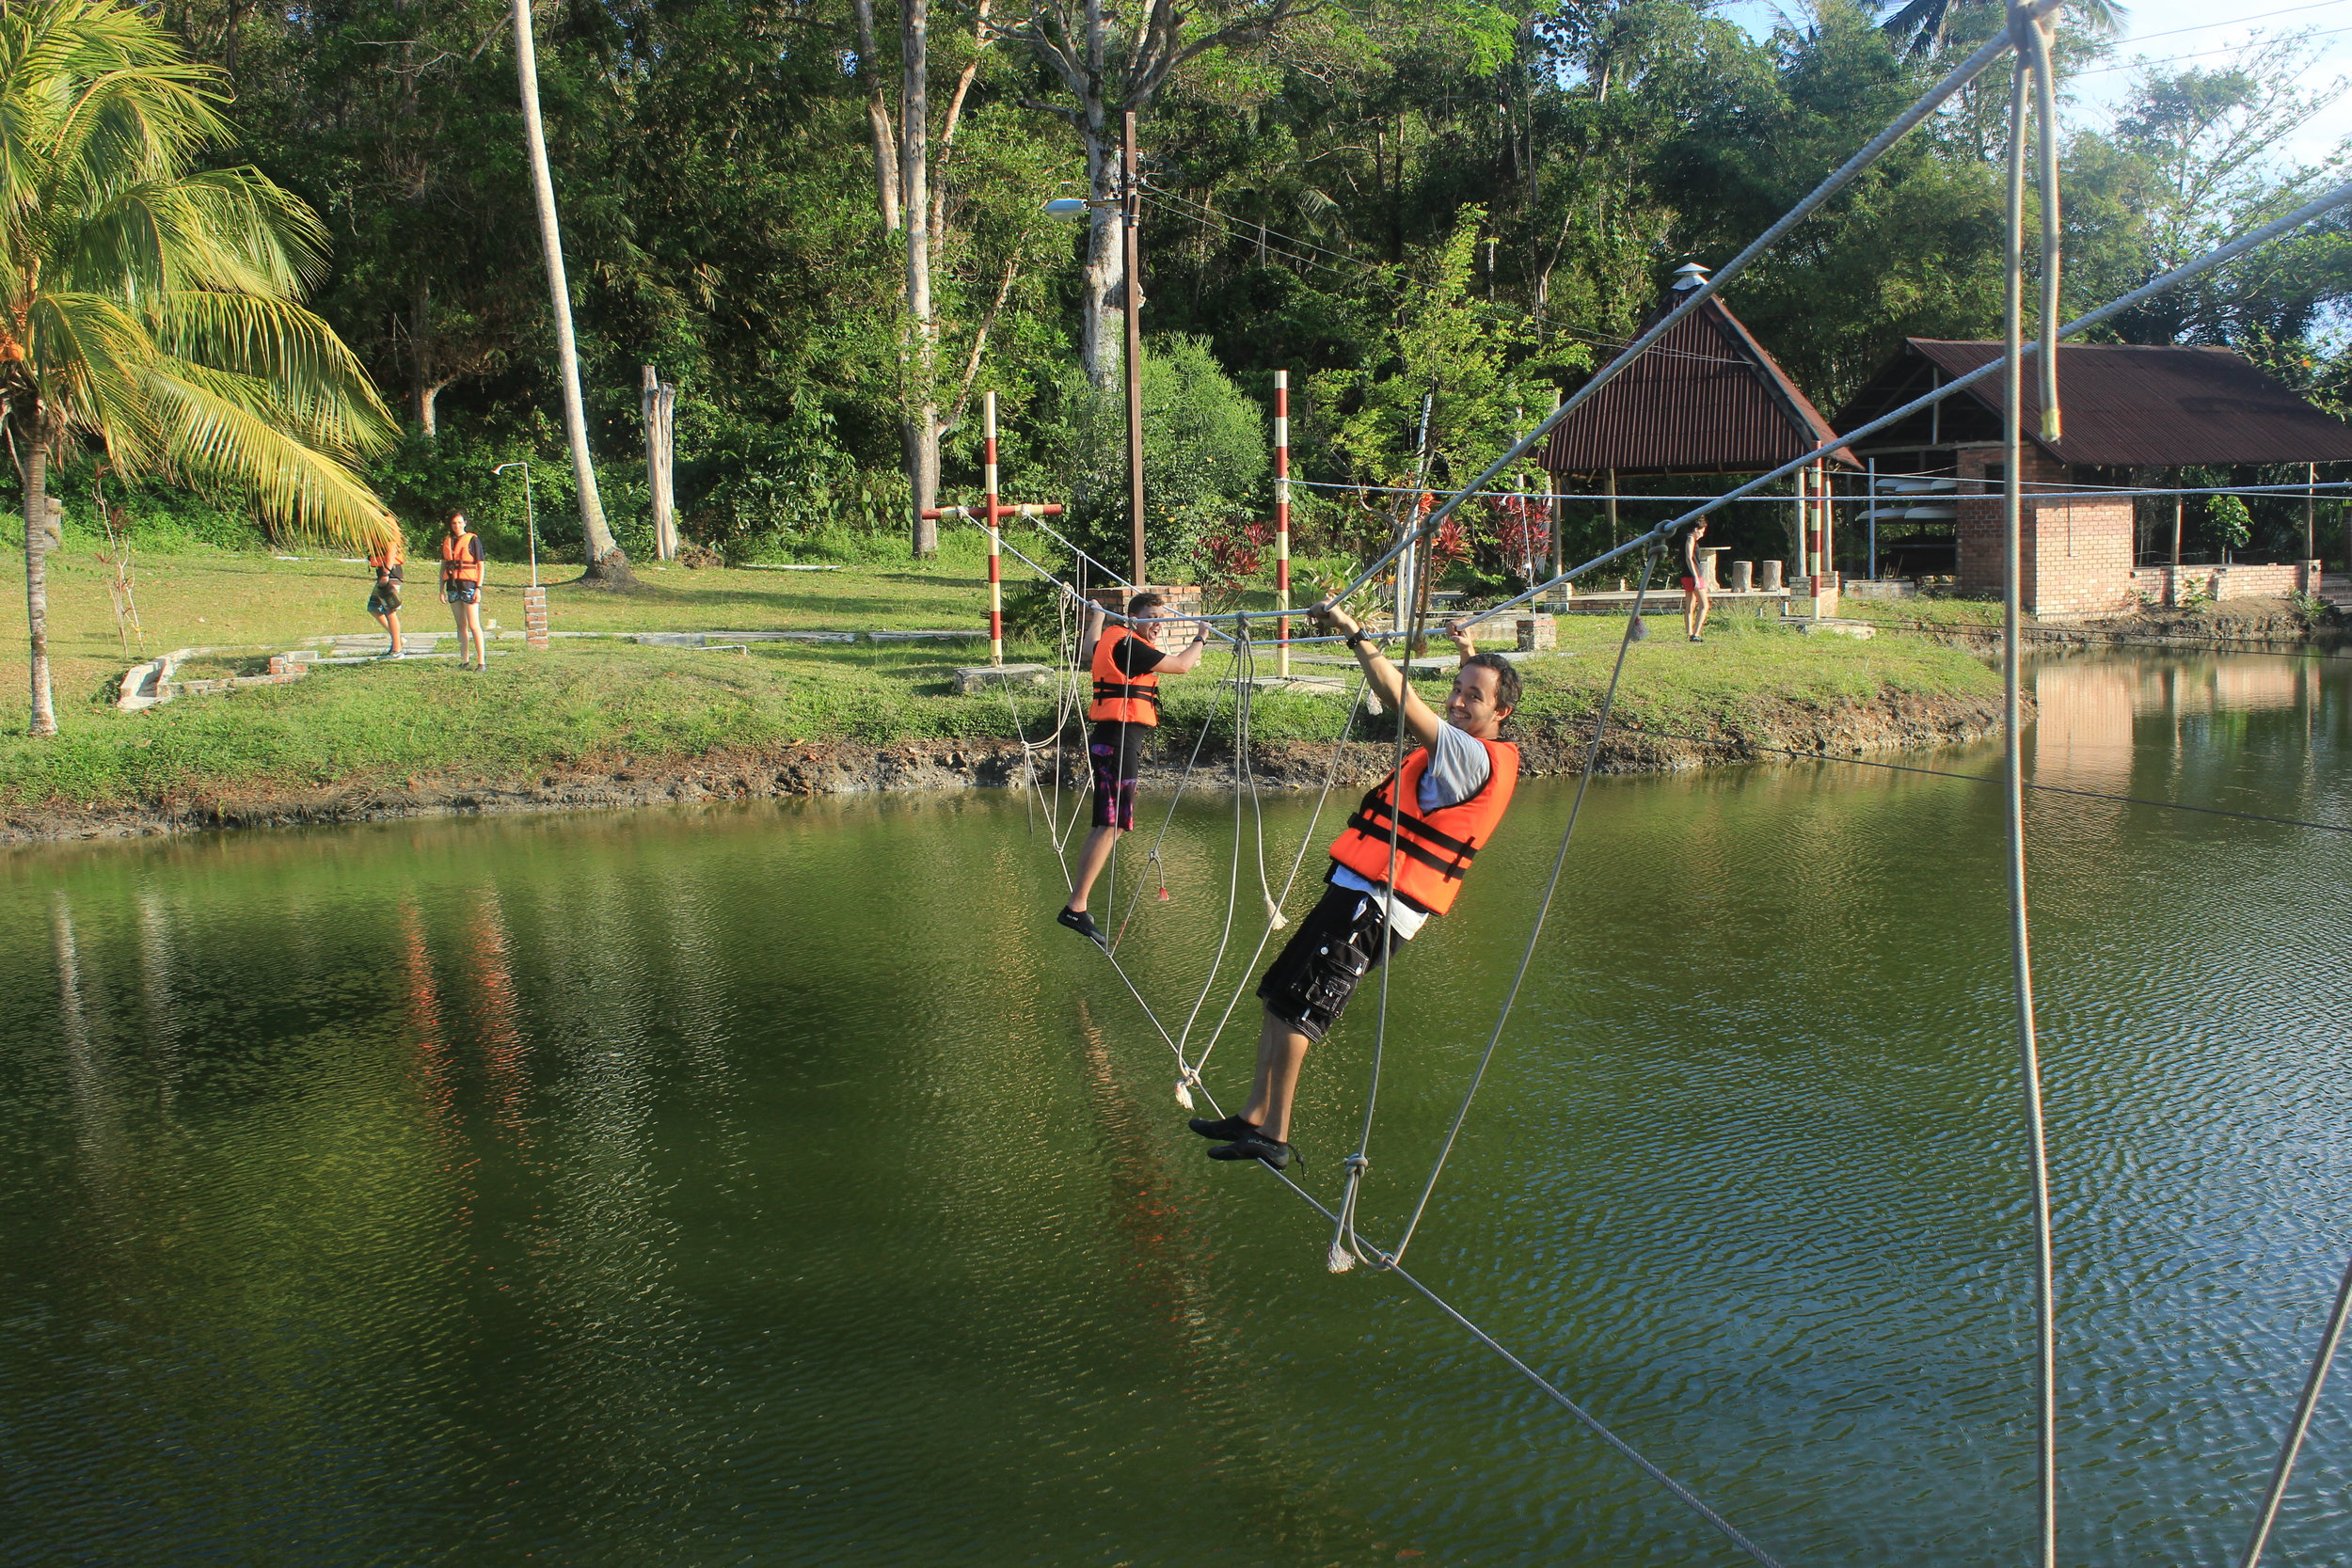 Sedili, Tanjung Sutera Resort, Low Ropes, Water Course, Pond (25).JPG